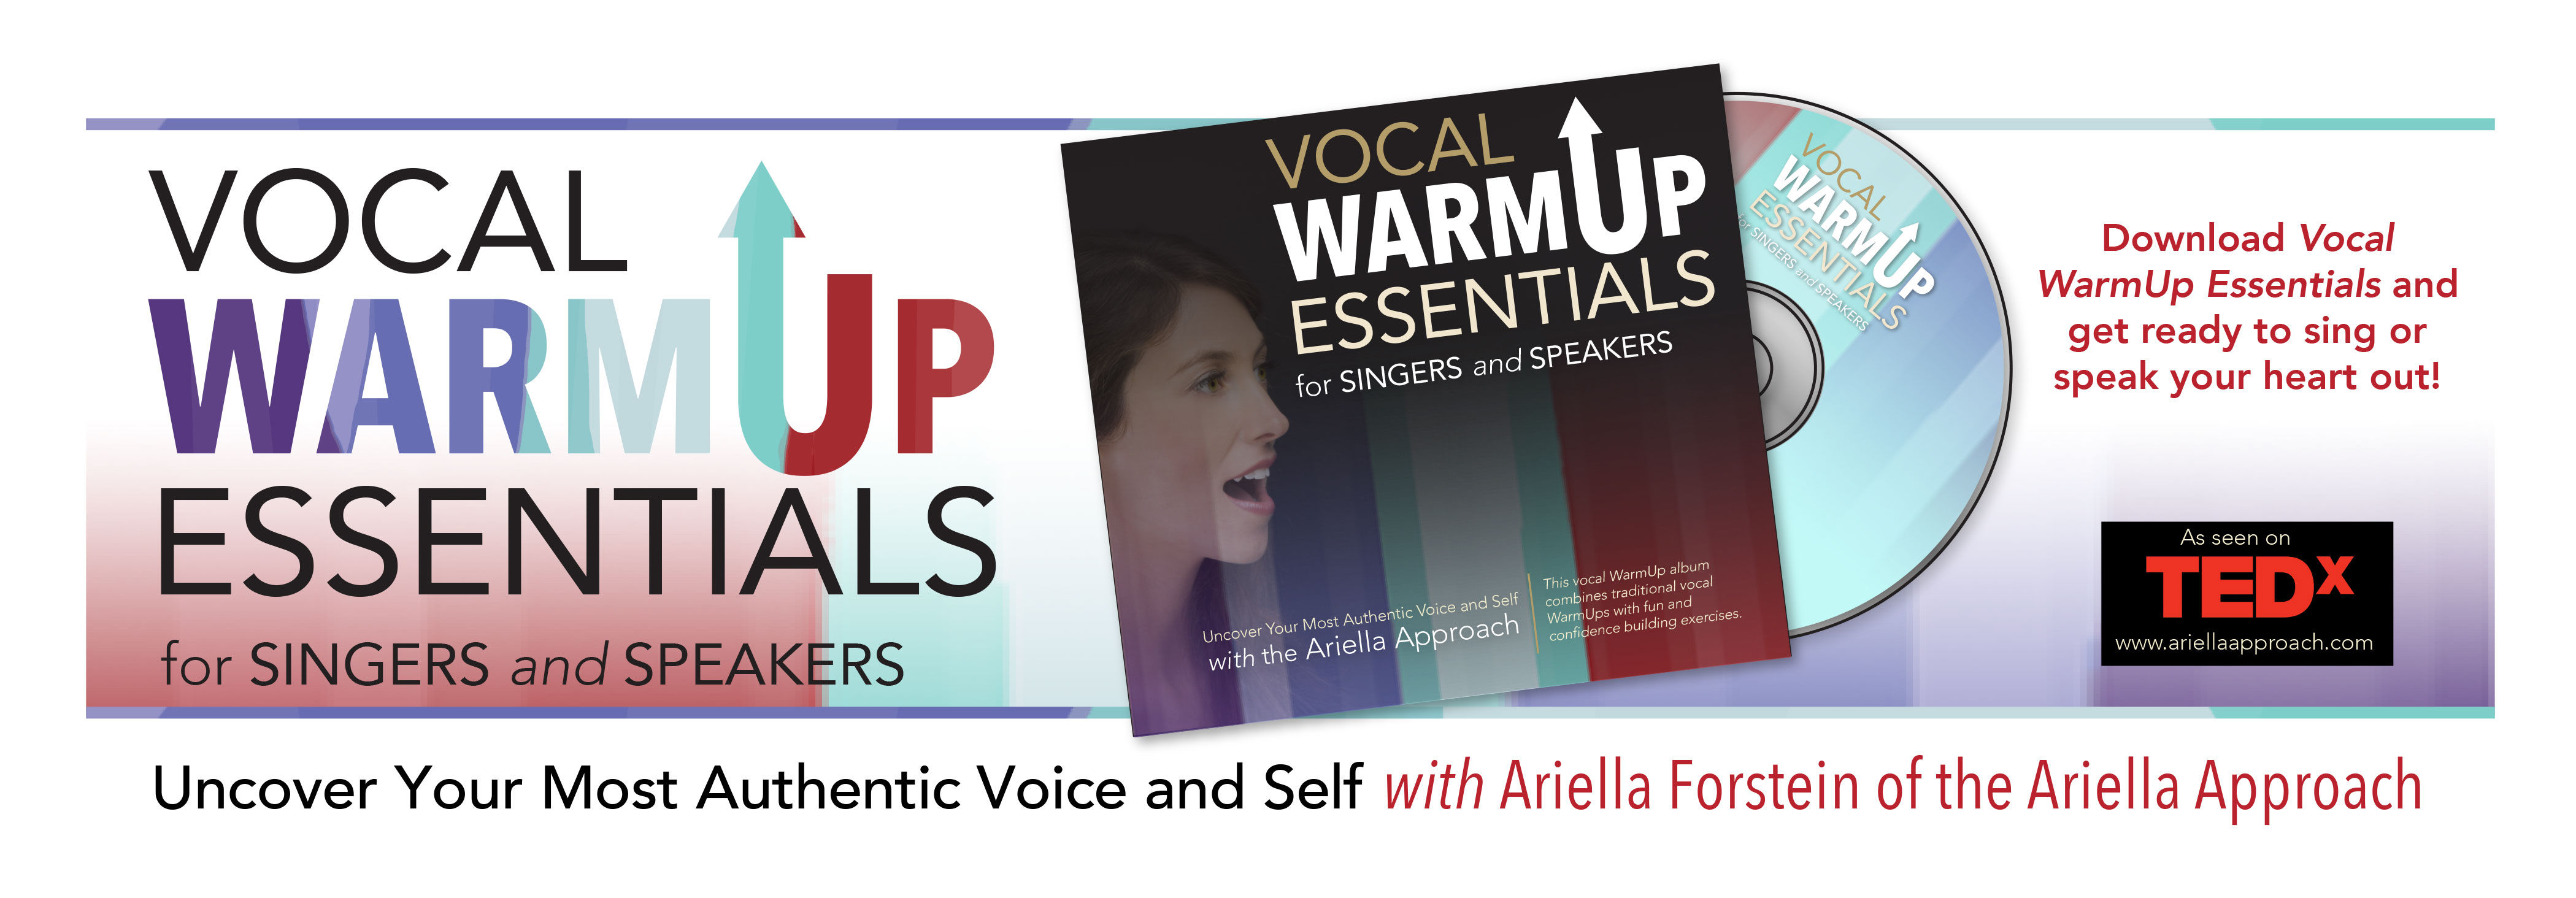 Ariella Vocal Warm Up Essentials CD